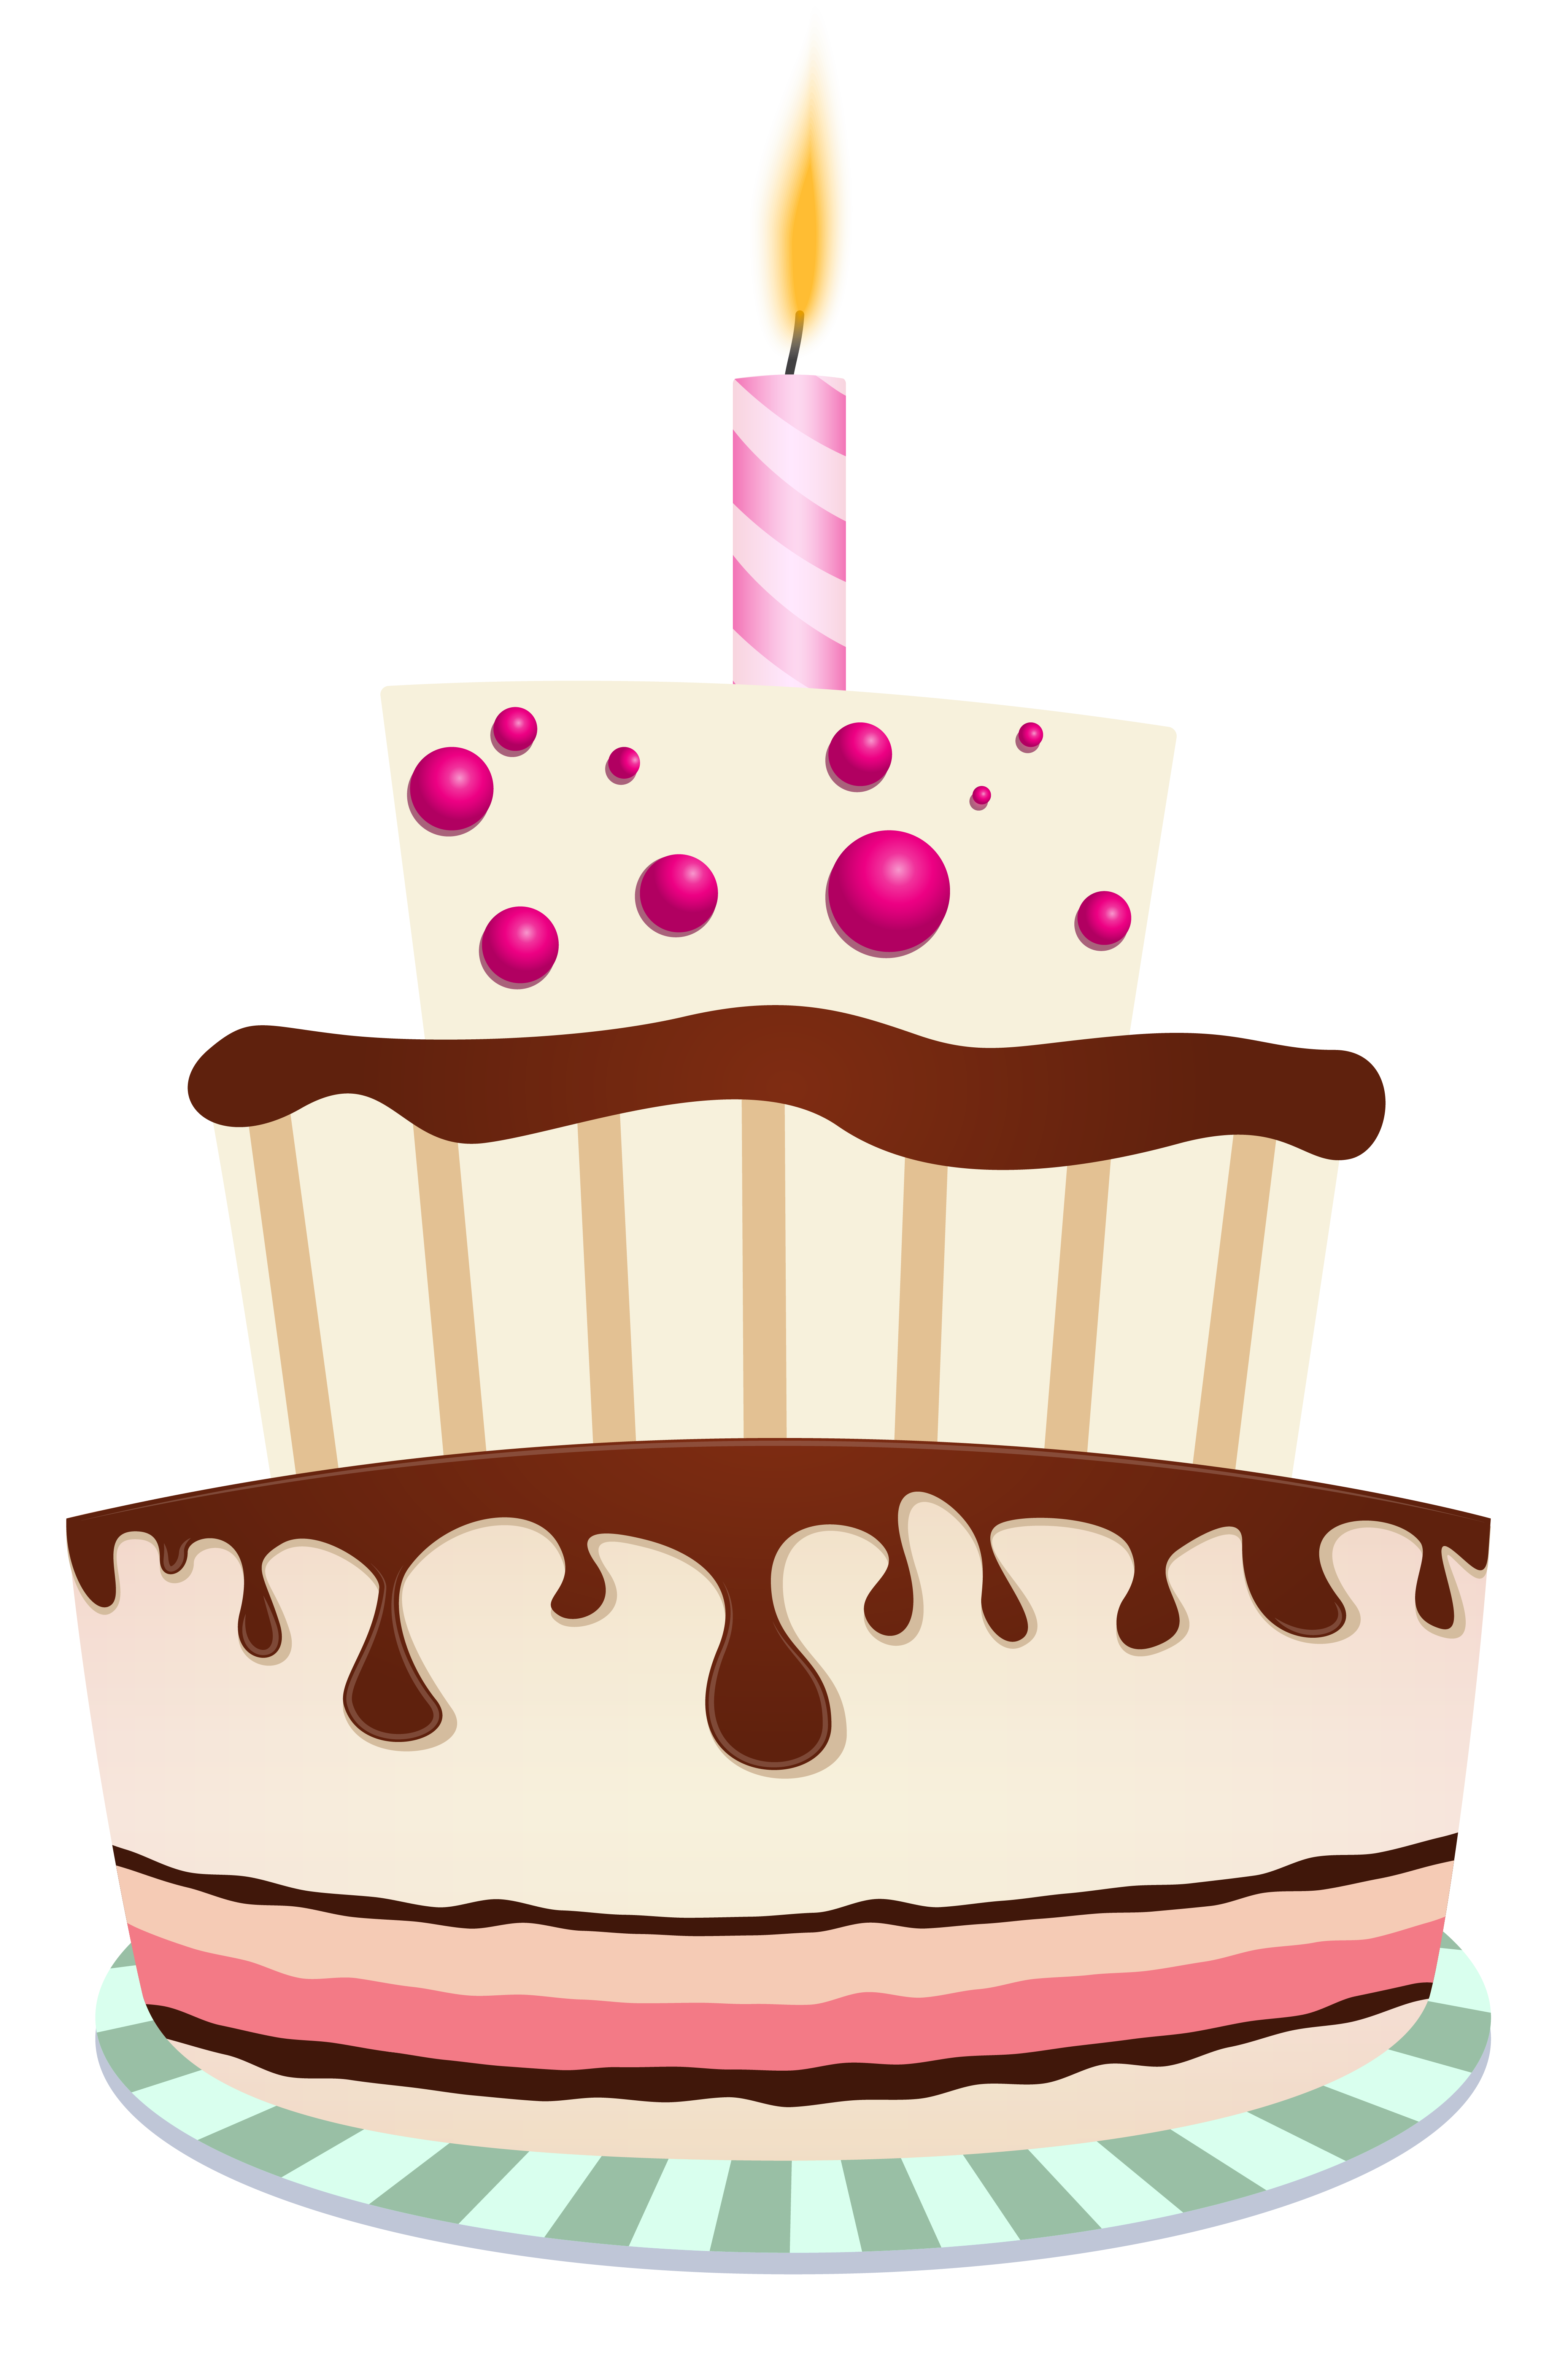 Candles clipart birthday cake. With one candle png